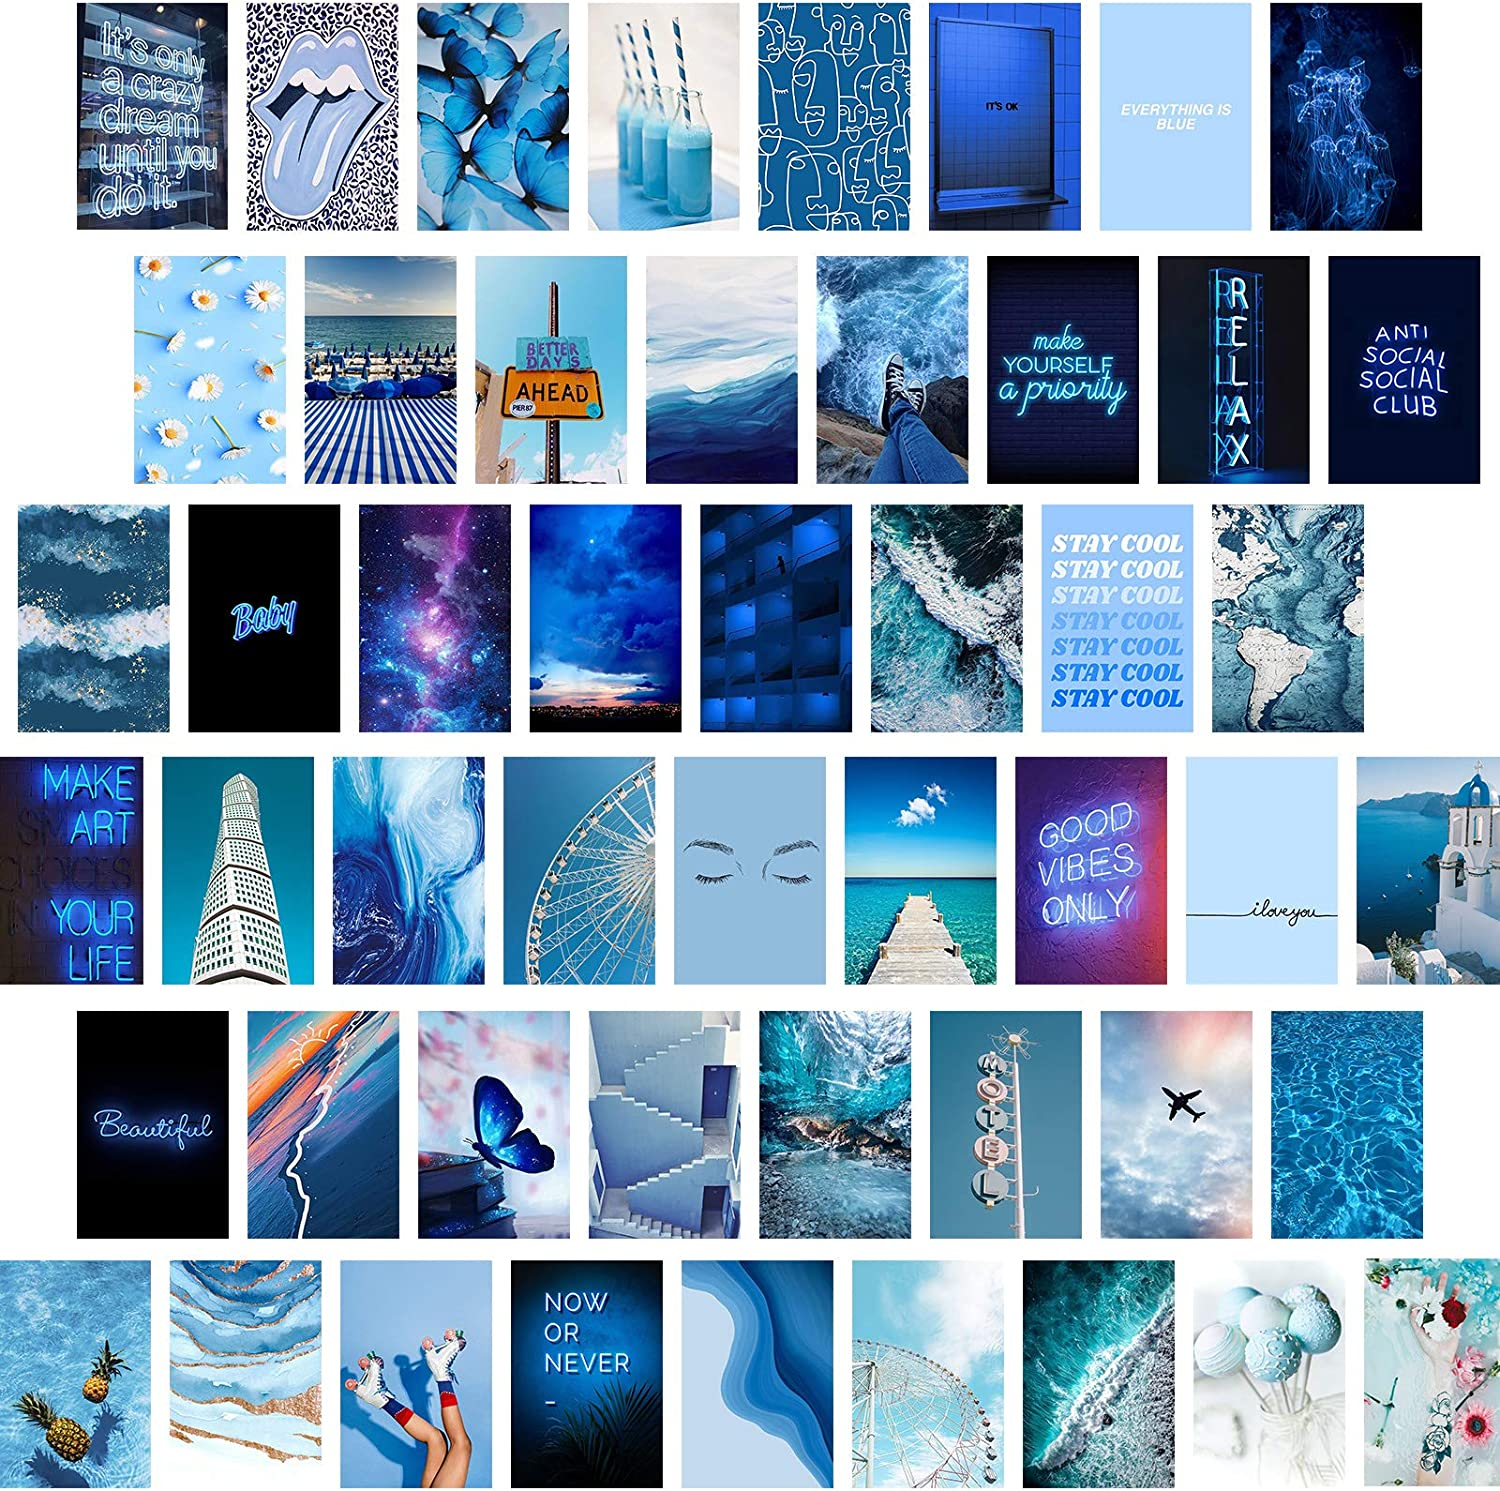 Gibelle Blue Wall Collage Kit Aesthetic Pictures, Aesthetic Room Decor for Teen Girls and Women, Cute Wall Decor for Bedroom, Aesthetic Posters Photos Wall Art, Vsco Room Decor, 50Pcs, 4x6 Inch